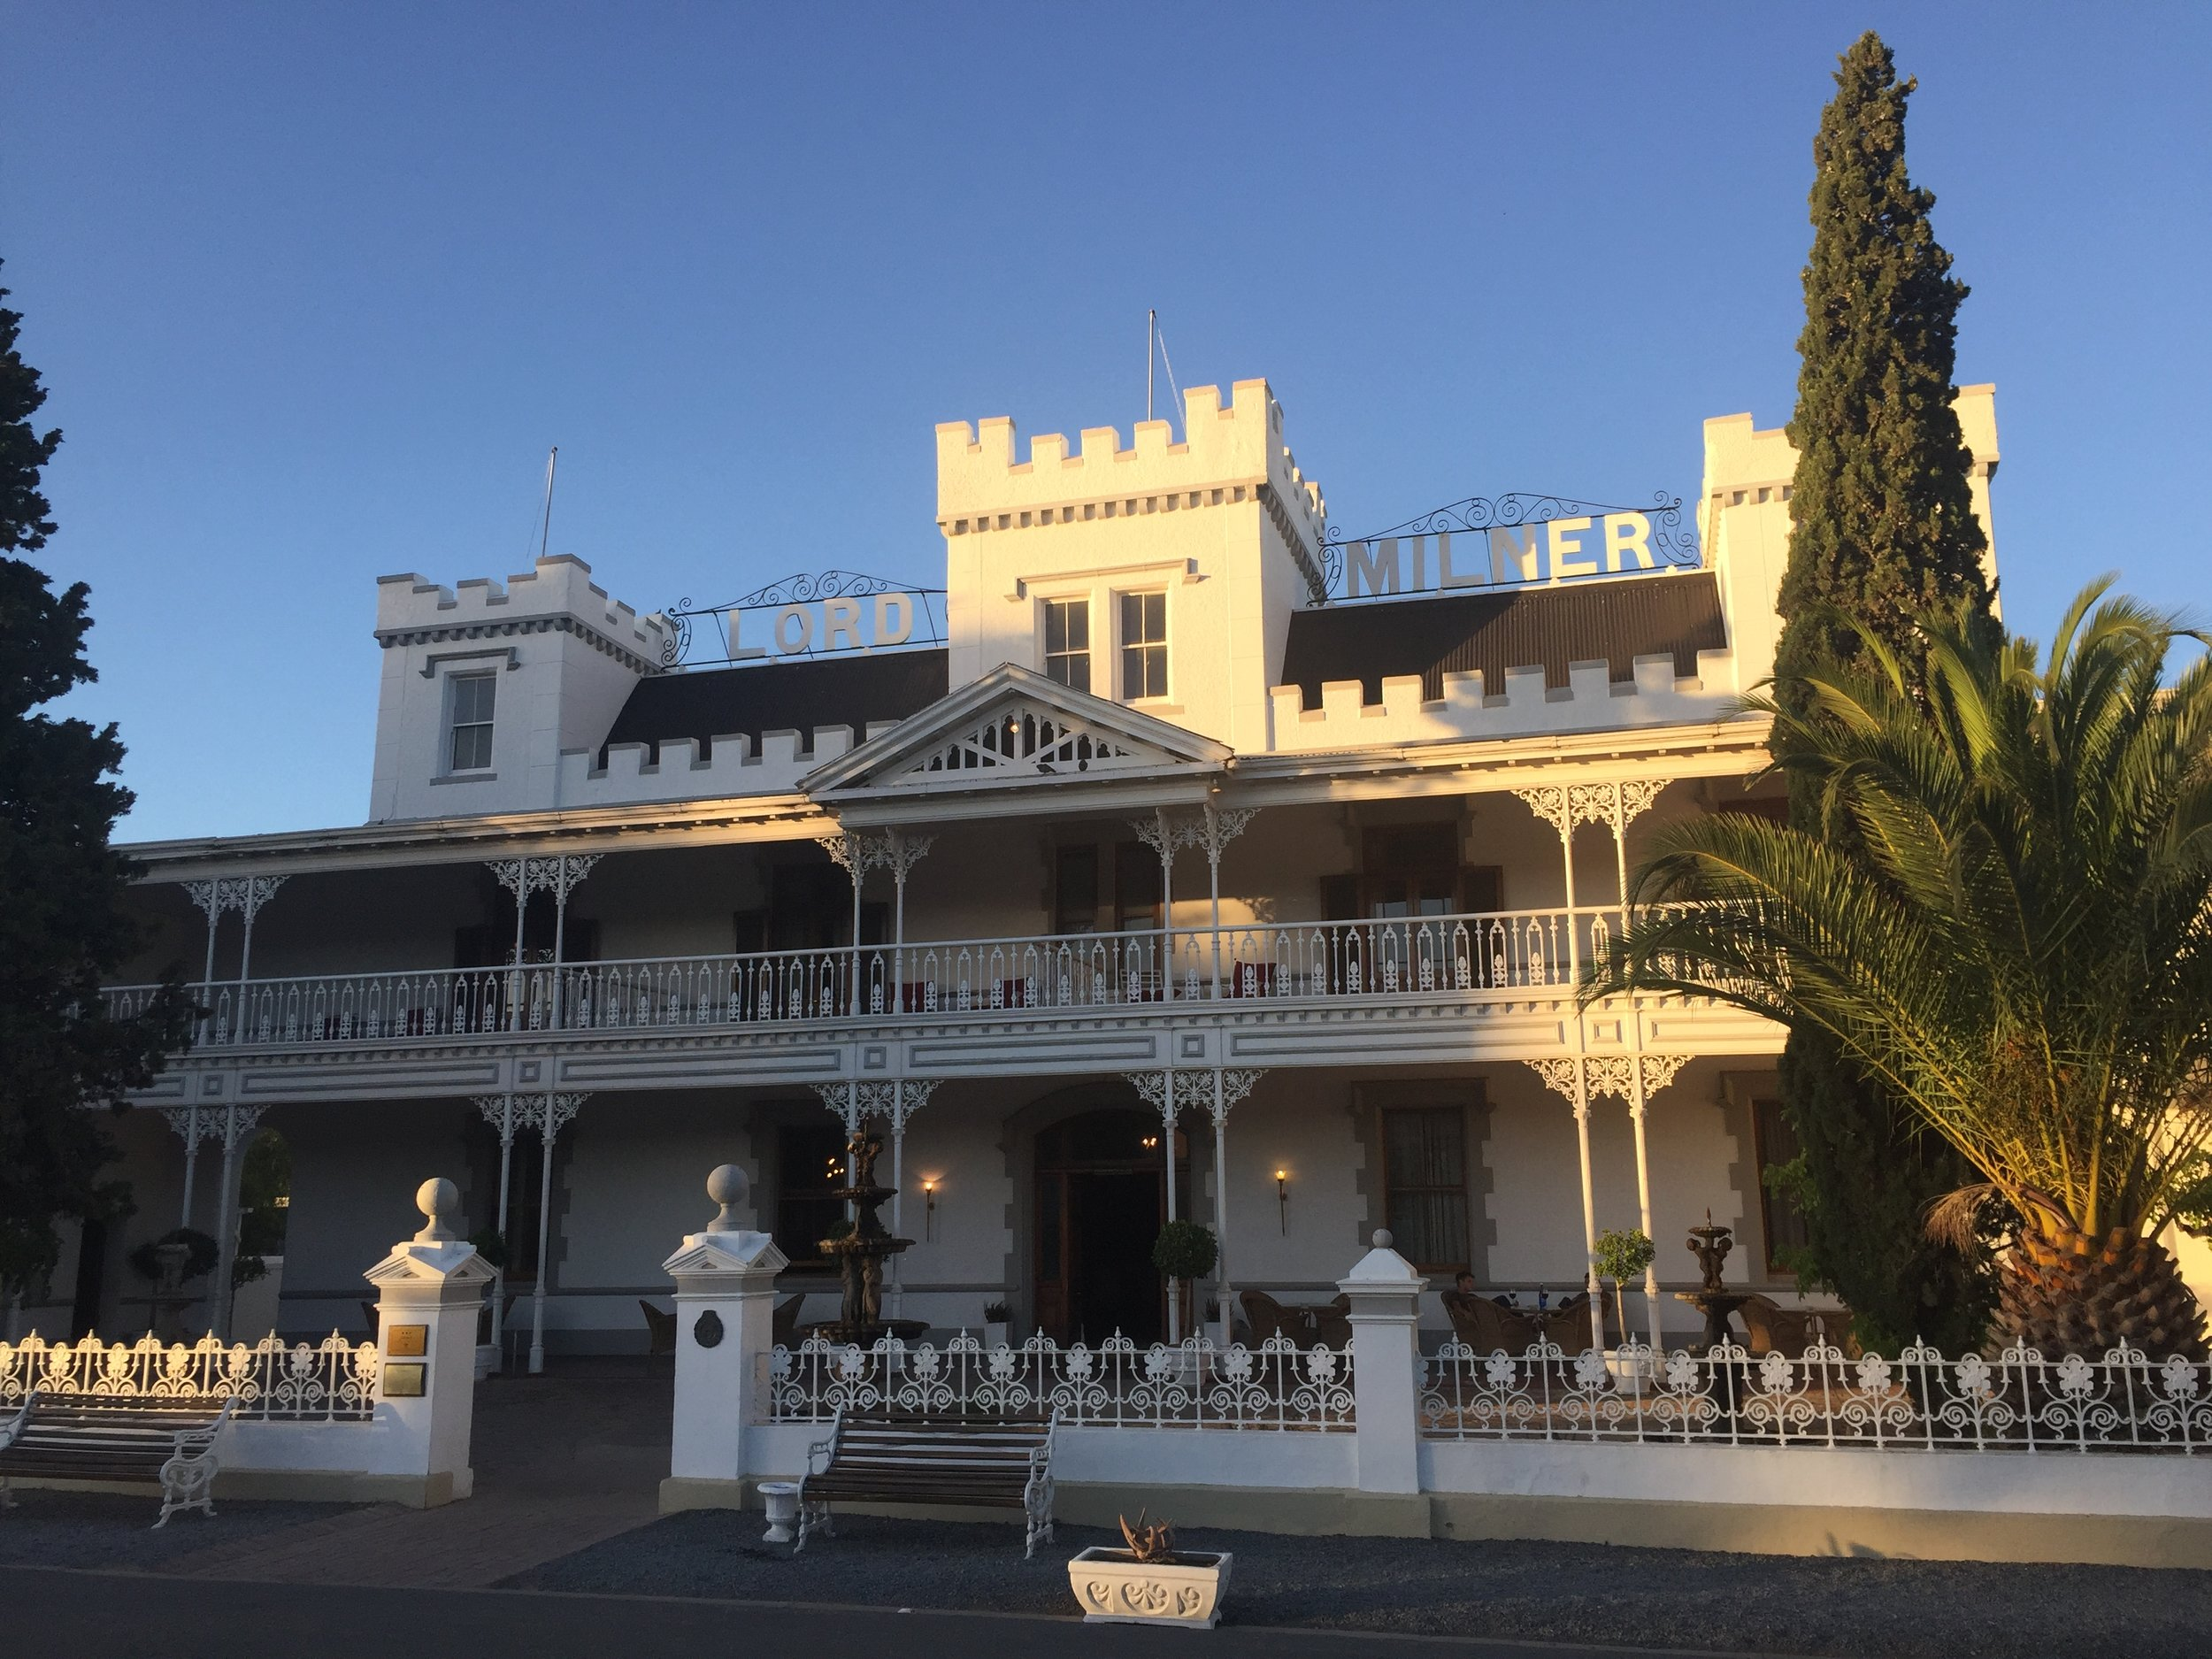 Stopping at Matjiesfontein and looking in at the Lord Milner Hotel.